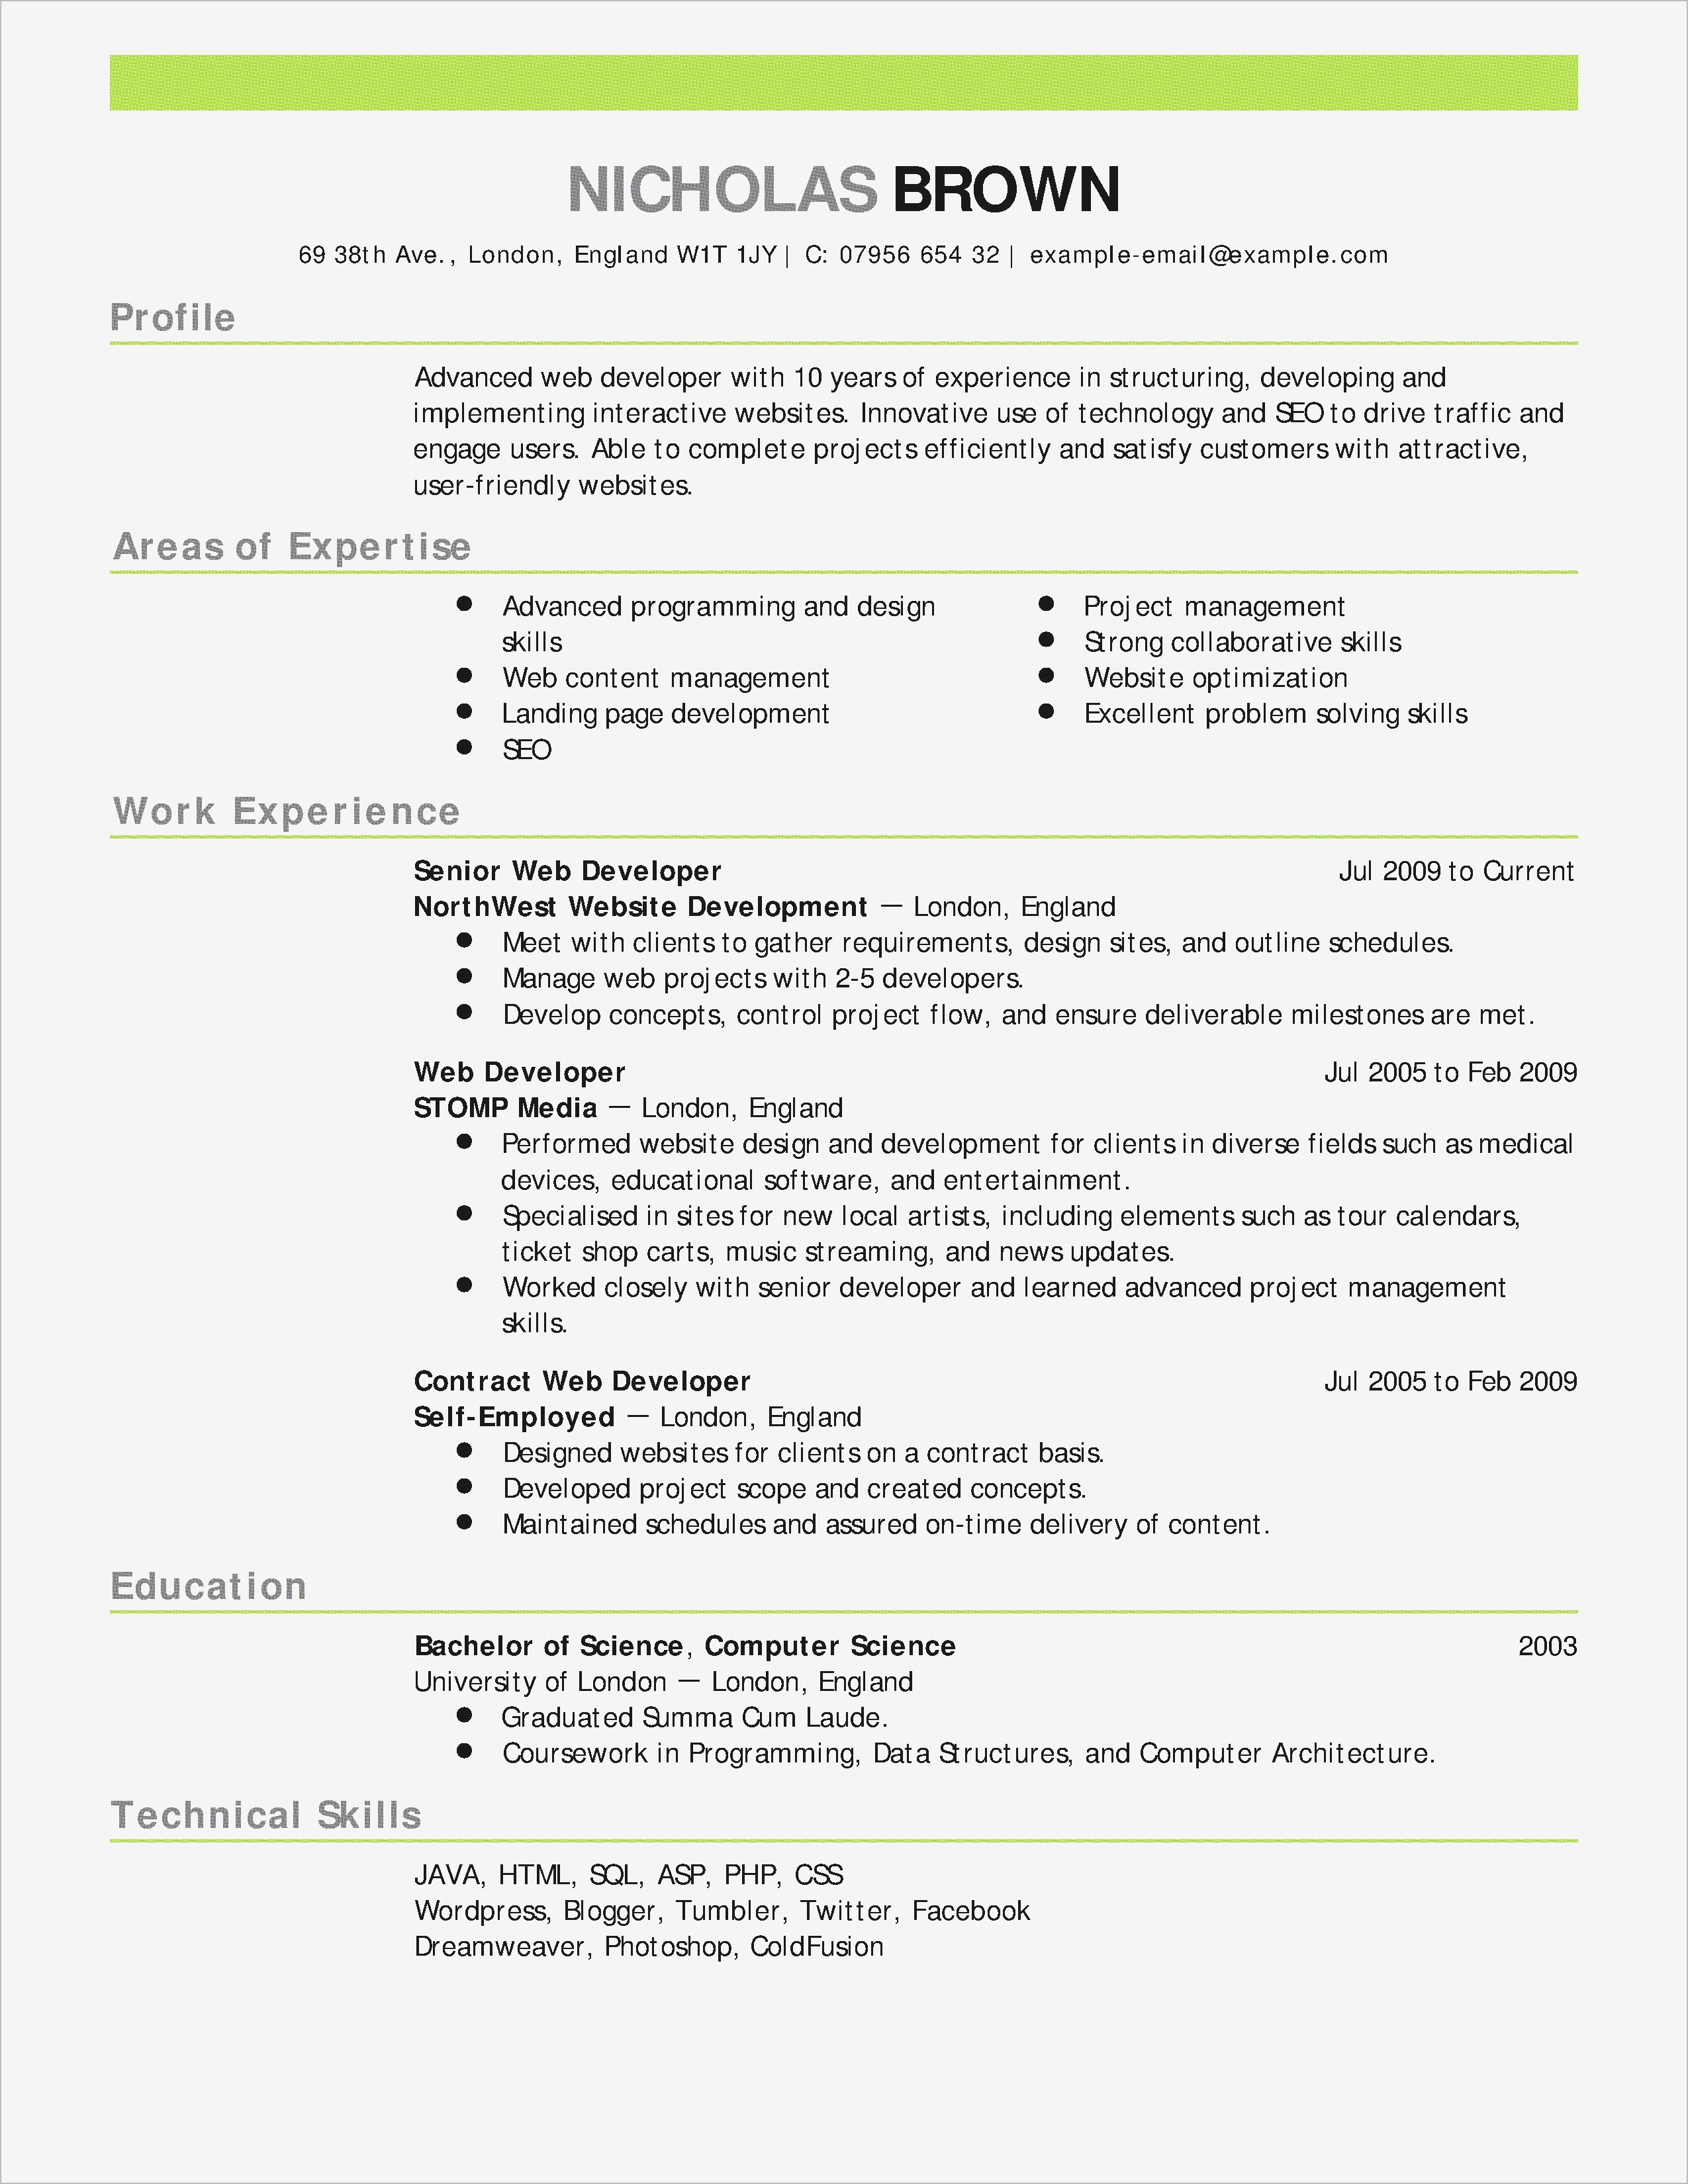 Aviation Cover Letter Template - Aviation Management Resume Examples at Resume Sample Ideas